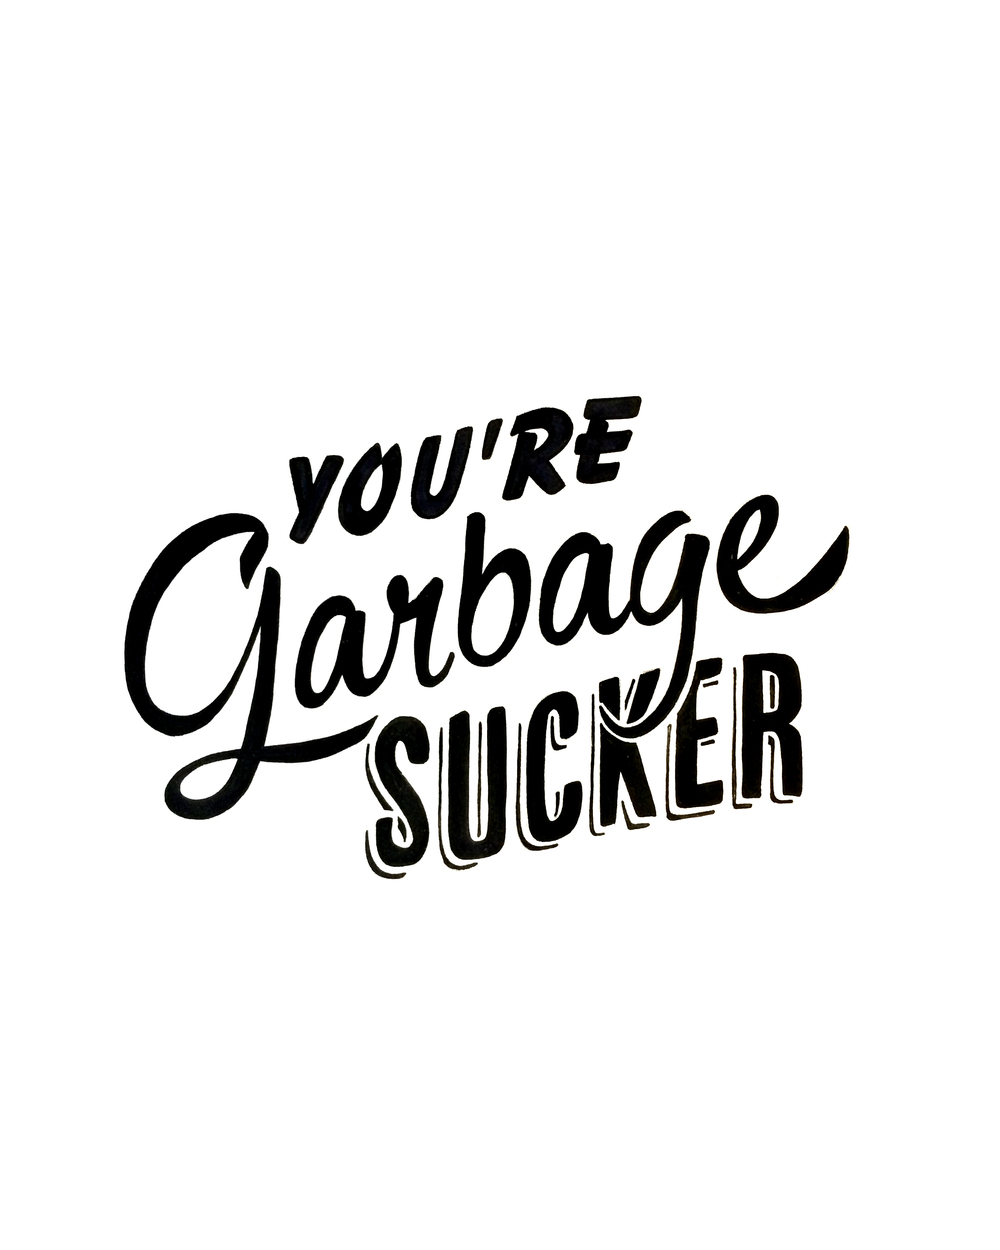 Garbage_sucker.jpg